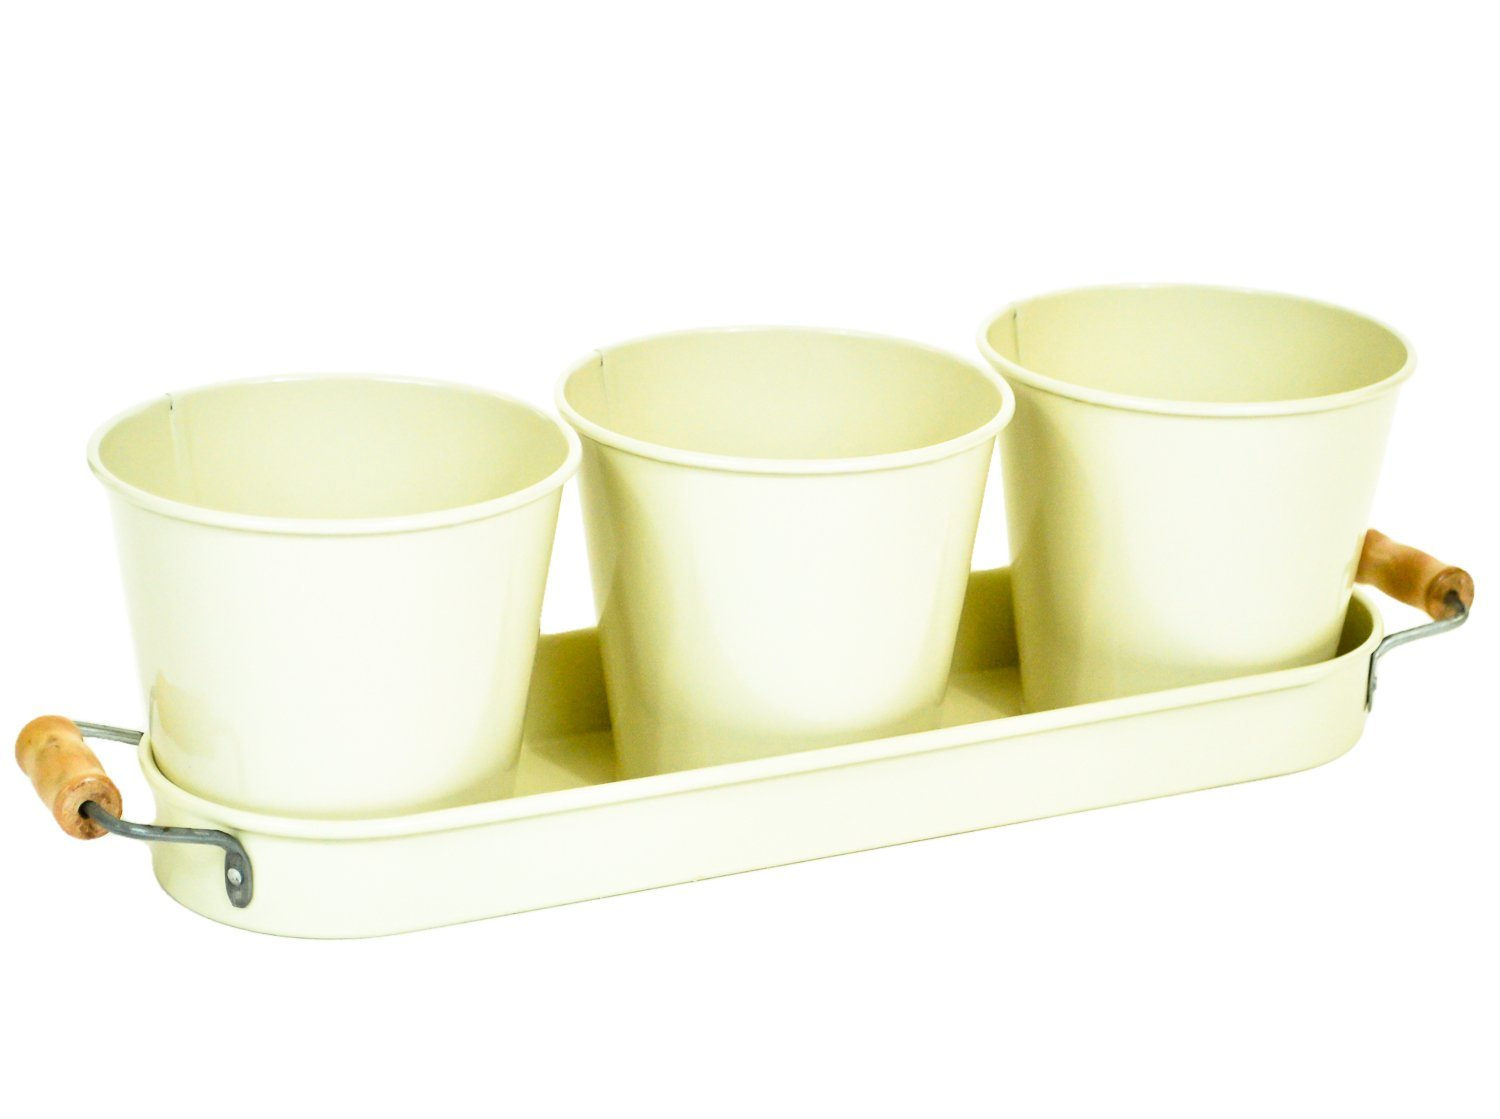 east2eden Retro Vintage Cream Enamel Set of 3 Plant Herb Flower Pot Pots Planter with Tray